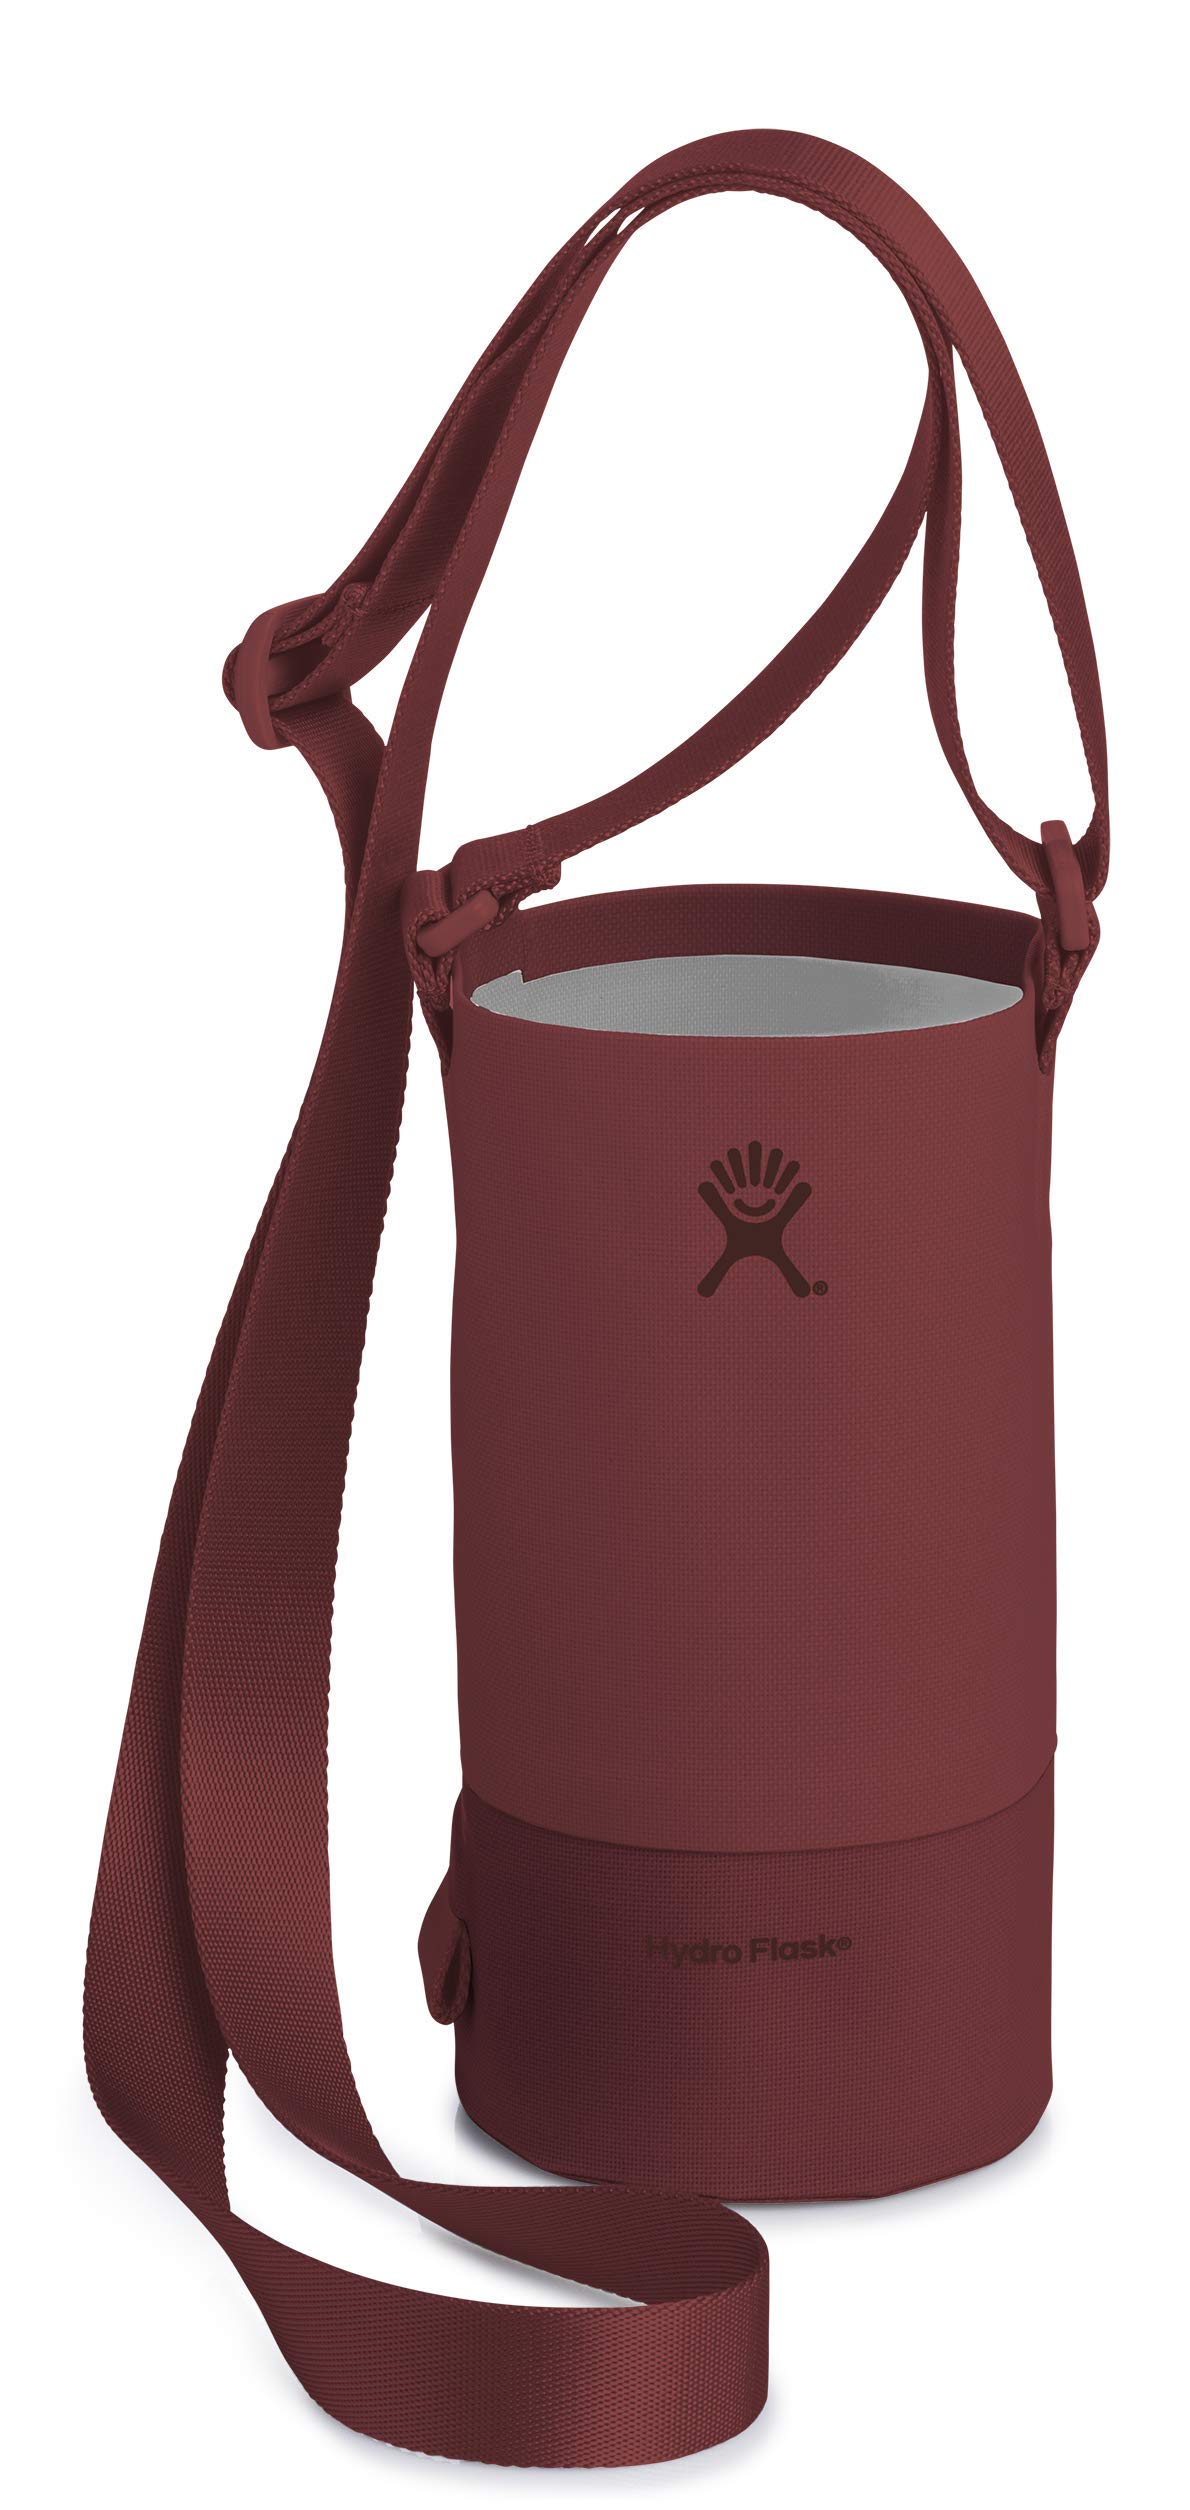 Hydro Flask Large Soft Sided Nylon Tag Along Water Bottle Sling with Pockets, Brick (Fits 32 oz and 40 oz Bottles)